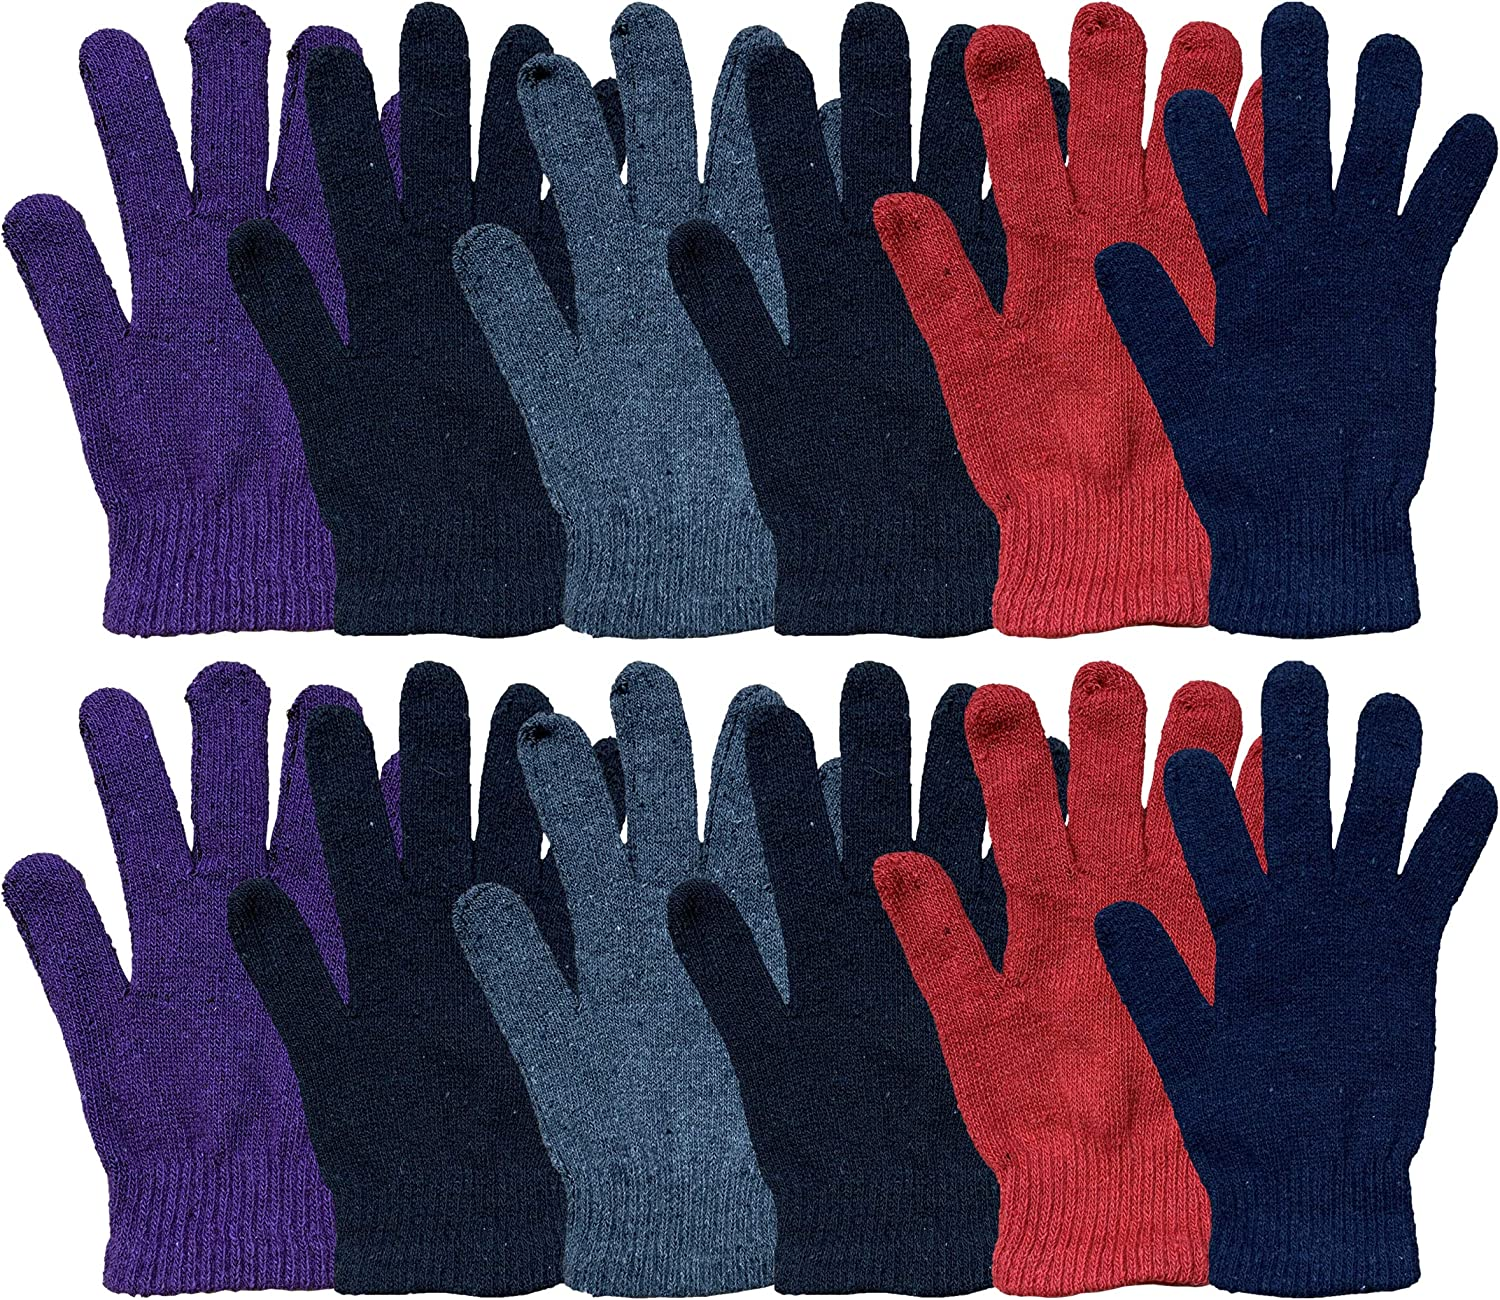 12 Pairs of Winter Gloves Mens Womens and Kids - Thermal Knit Stretchy Fuzzy Bulk Glove Colors